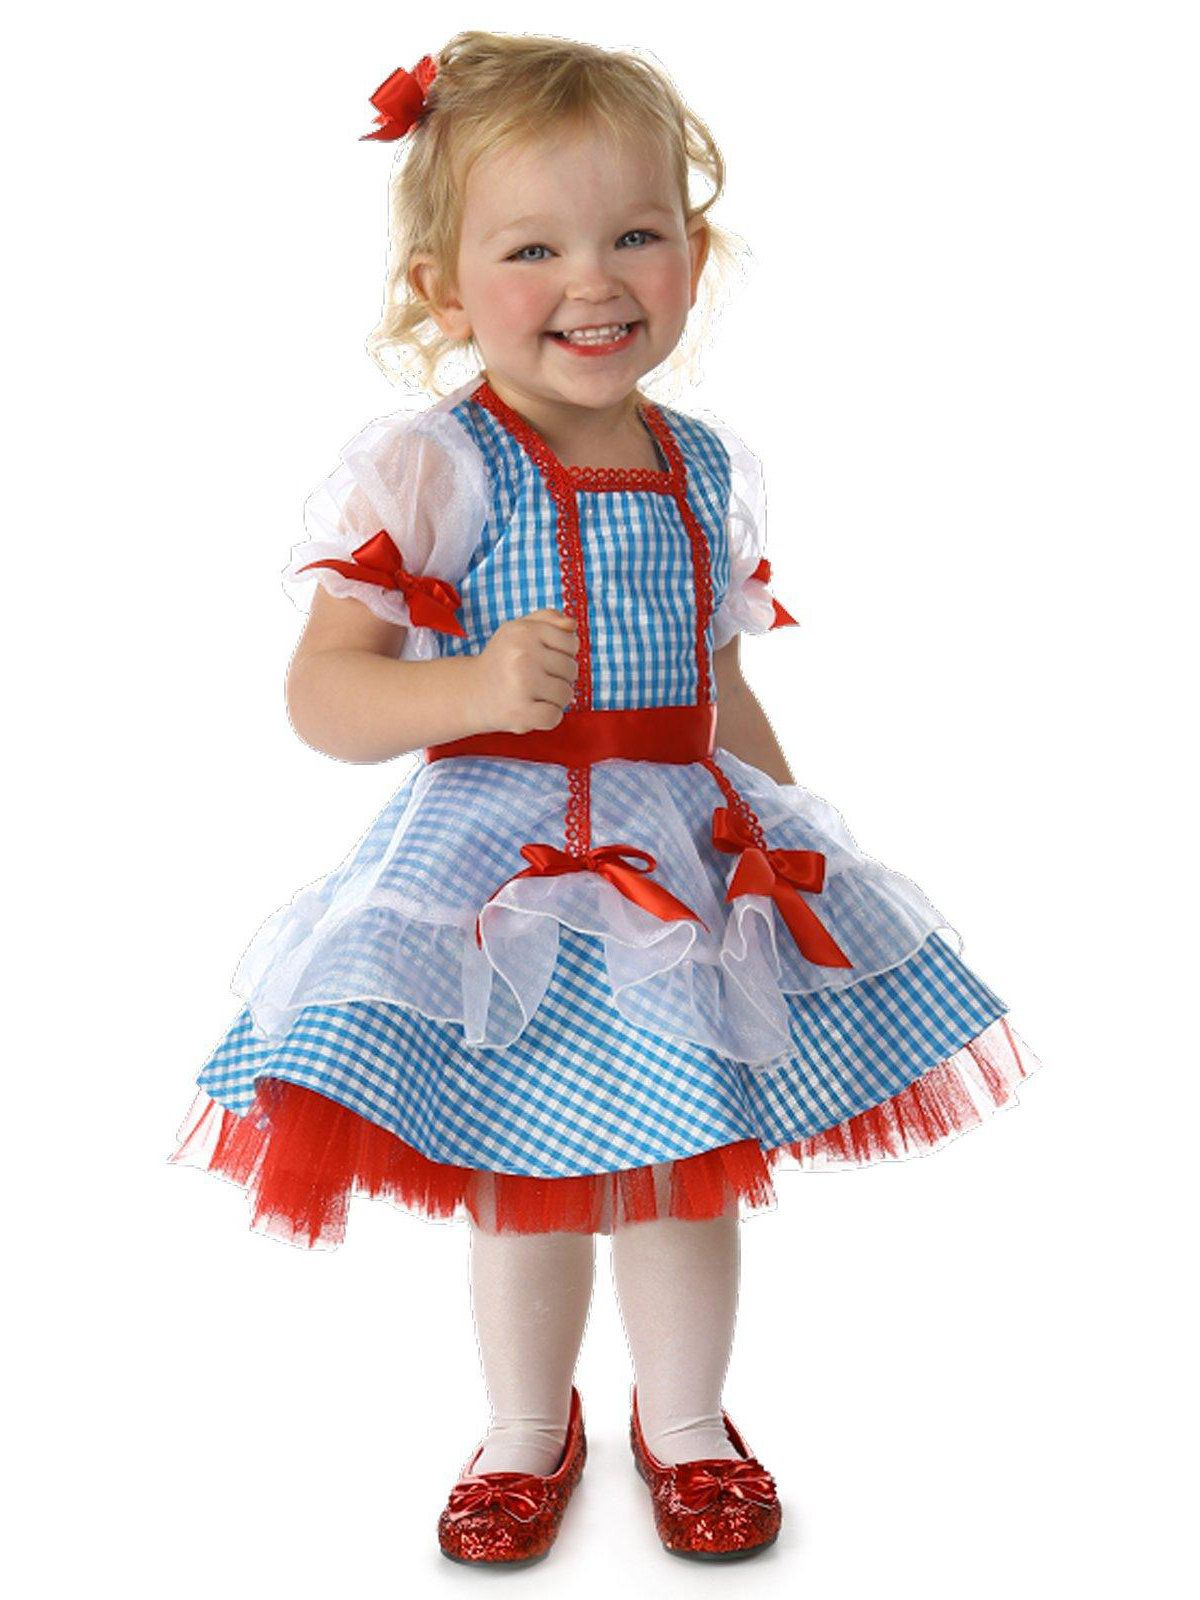 Infant Dorothy Wizard of Oz Costume  sc 1 st  Wholesale Halloween Costumes & Infant Dorothy Wizard of Oz Costume - Baby/Toddler Costumes for 2018 ...